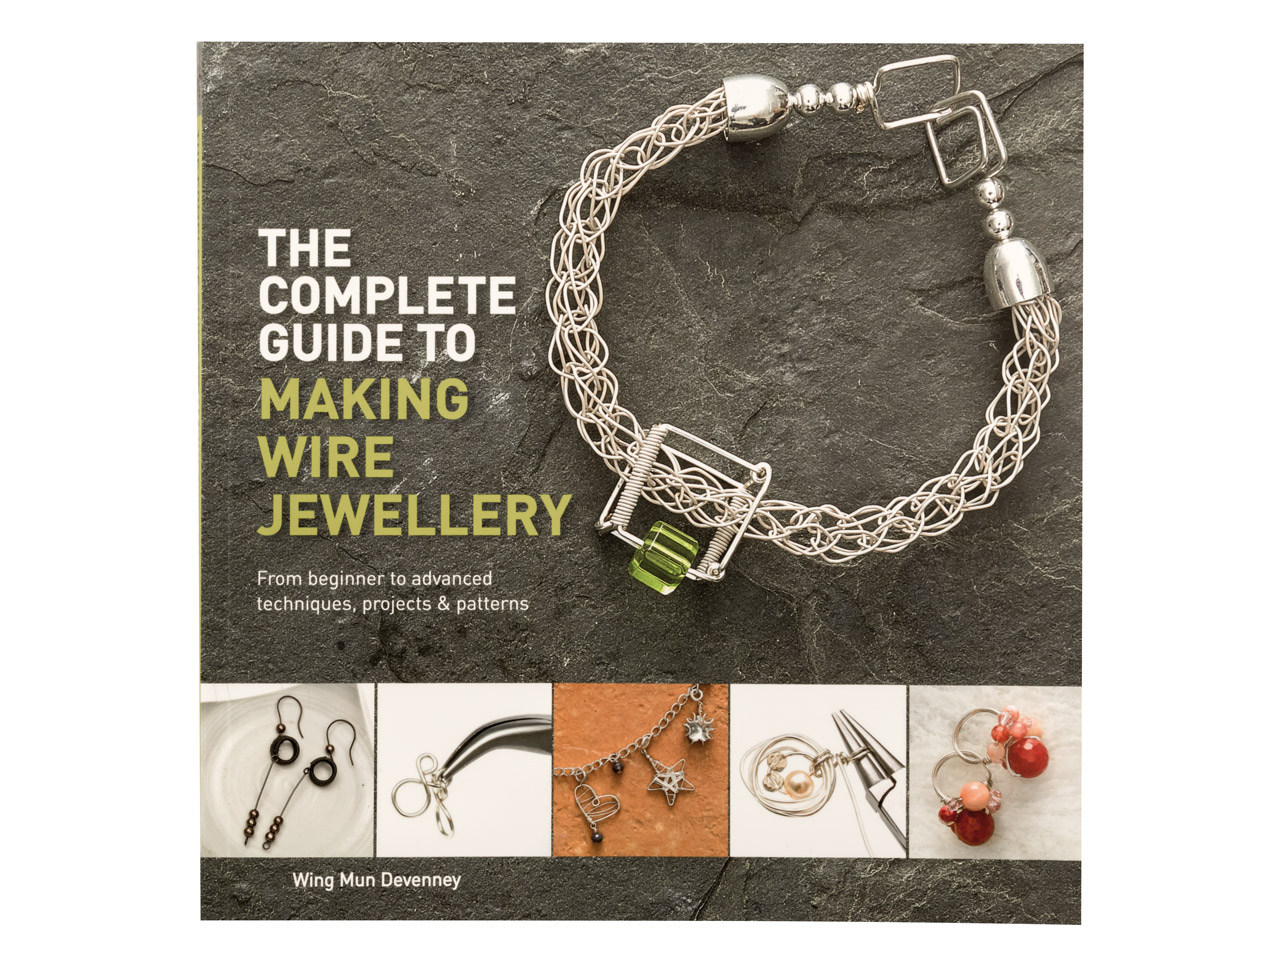 The Complete Guide To Making Wire  Jewellery By Wing Mun Devenney